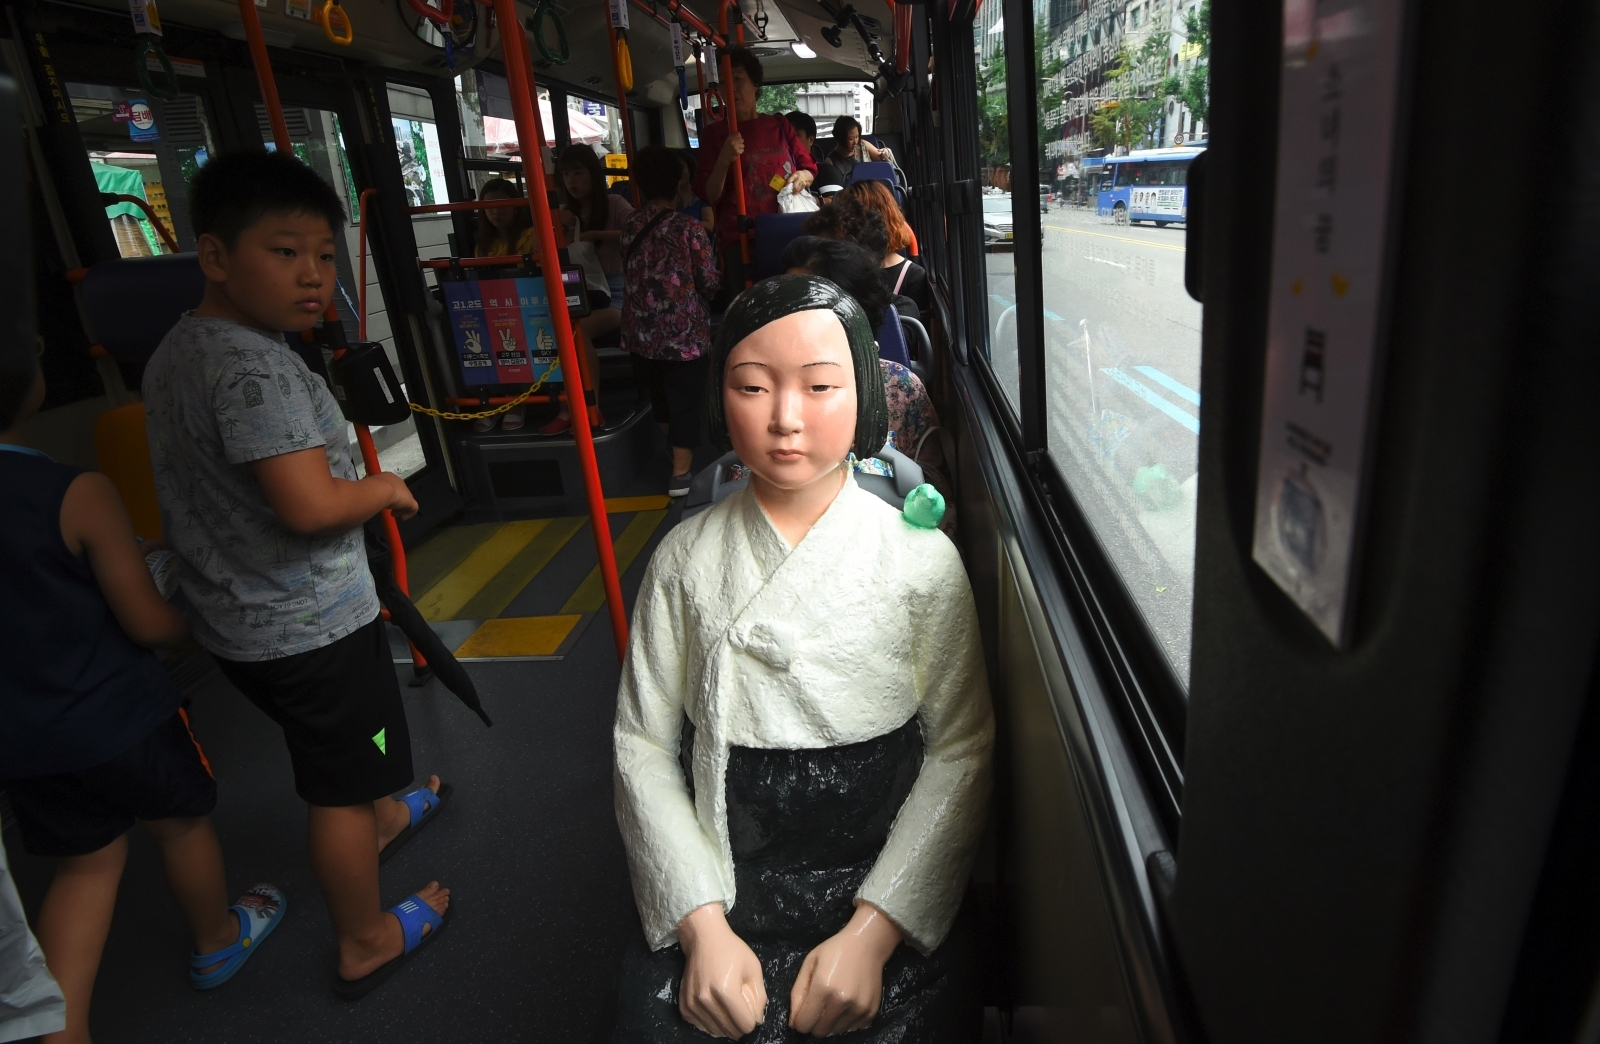 A boy (L) looks at a statue (R) of a teenage girl symbolizing former 'comfort women' who served as sex slaves for Japanese soldiers during World War II, placed on a bus running through downtown Seoul on August 14, 2017.